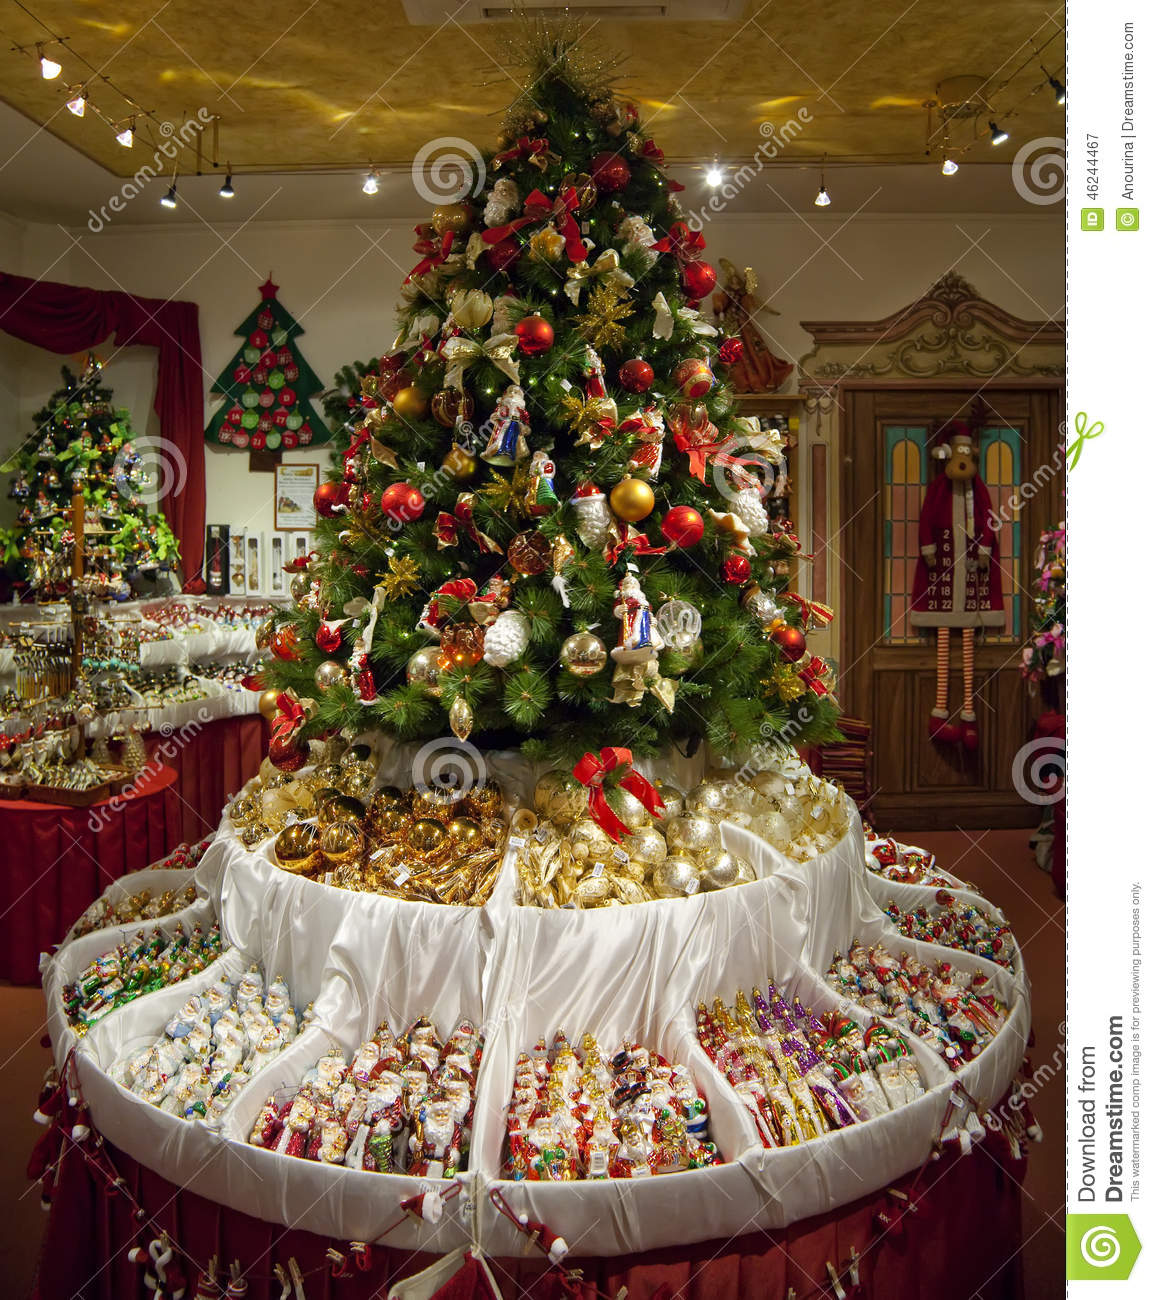 Shop With Christmas Decorations Stock Image